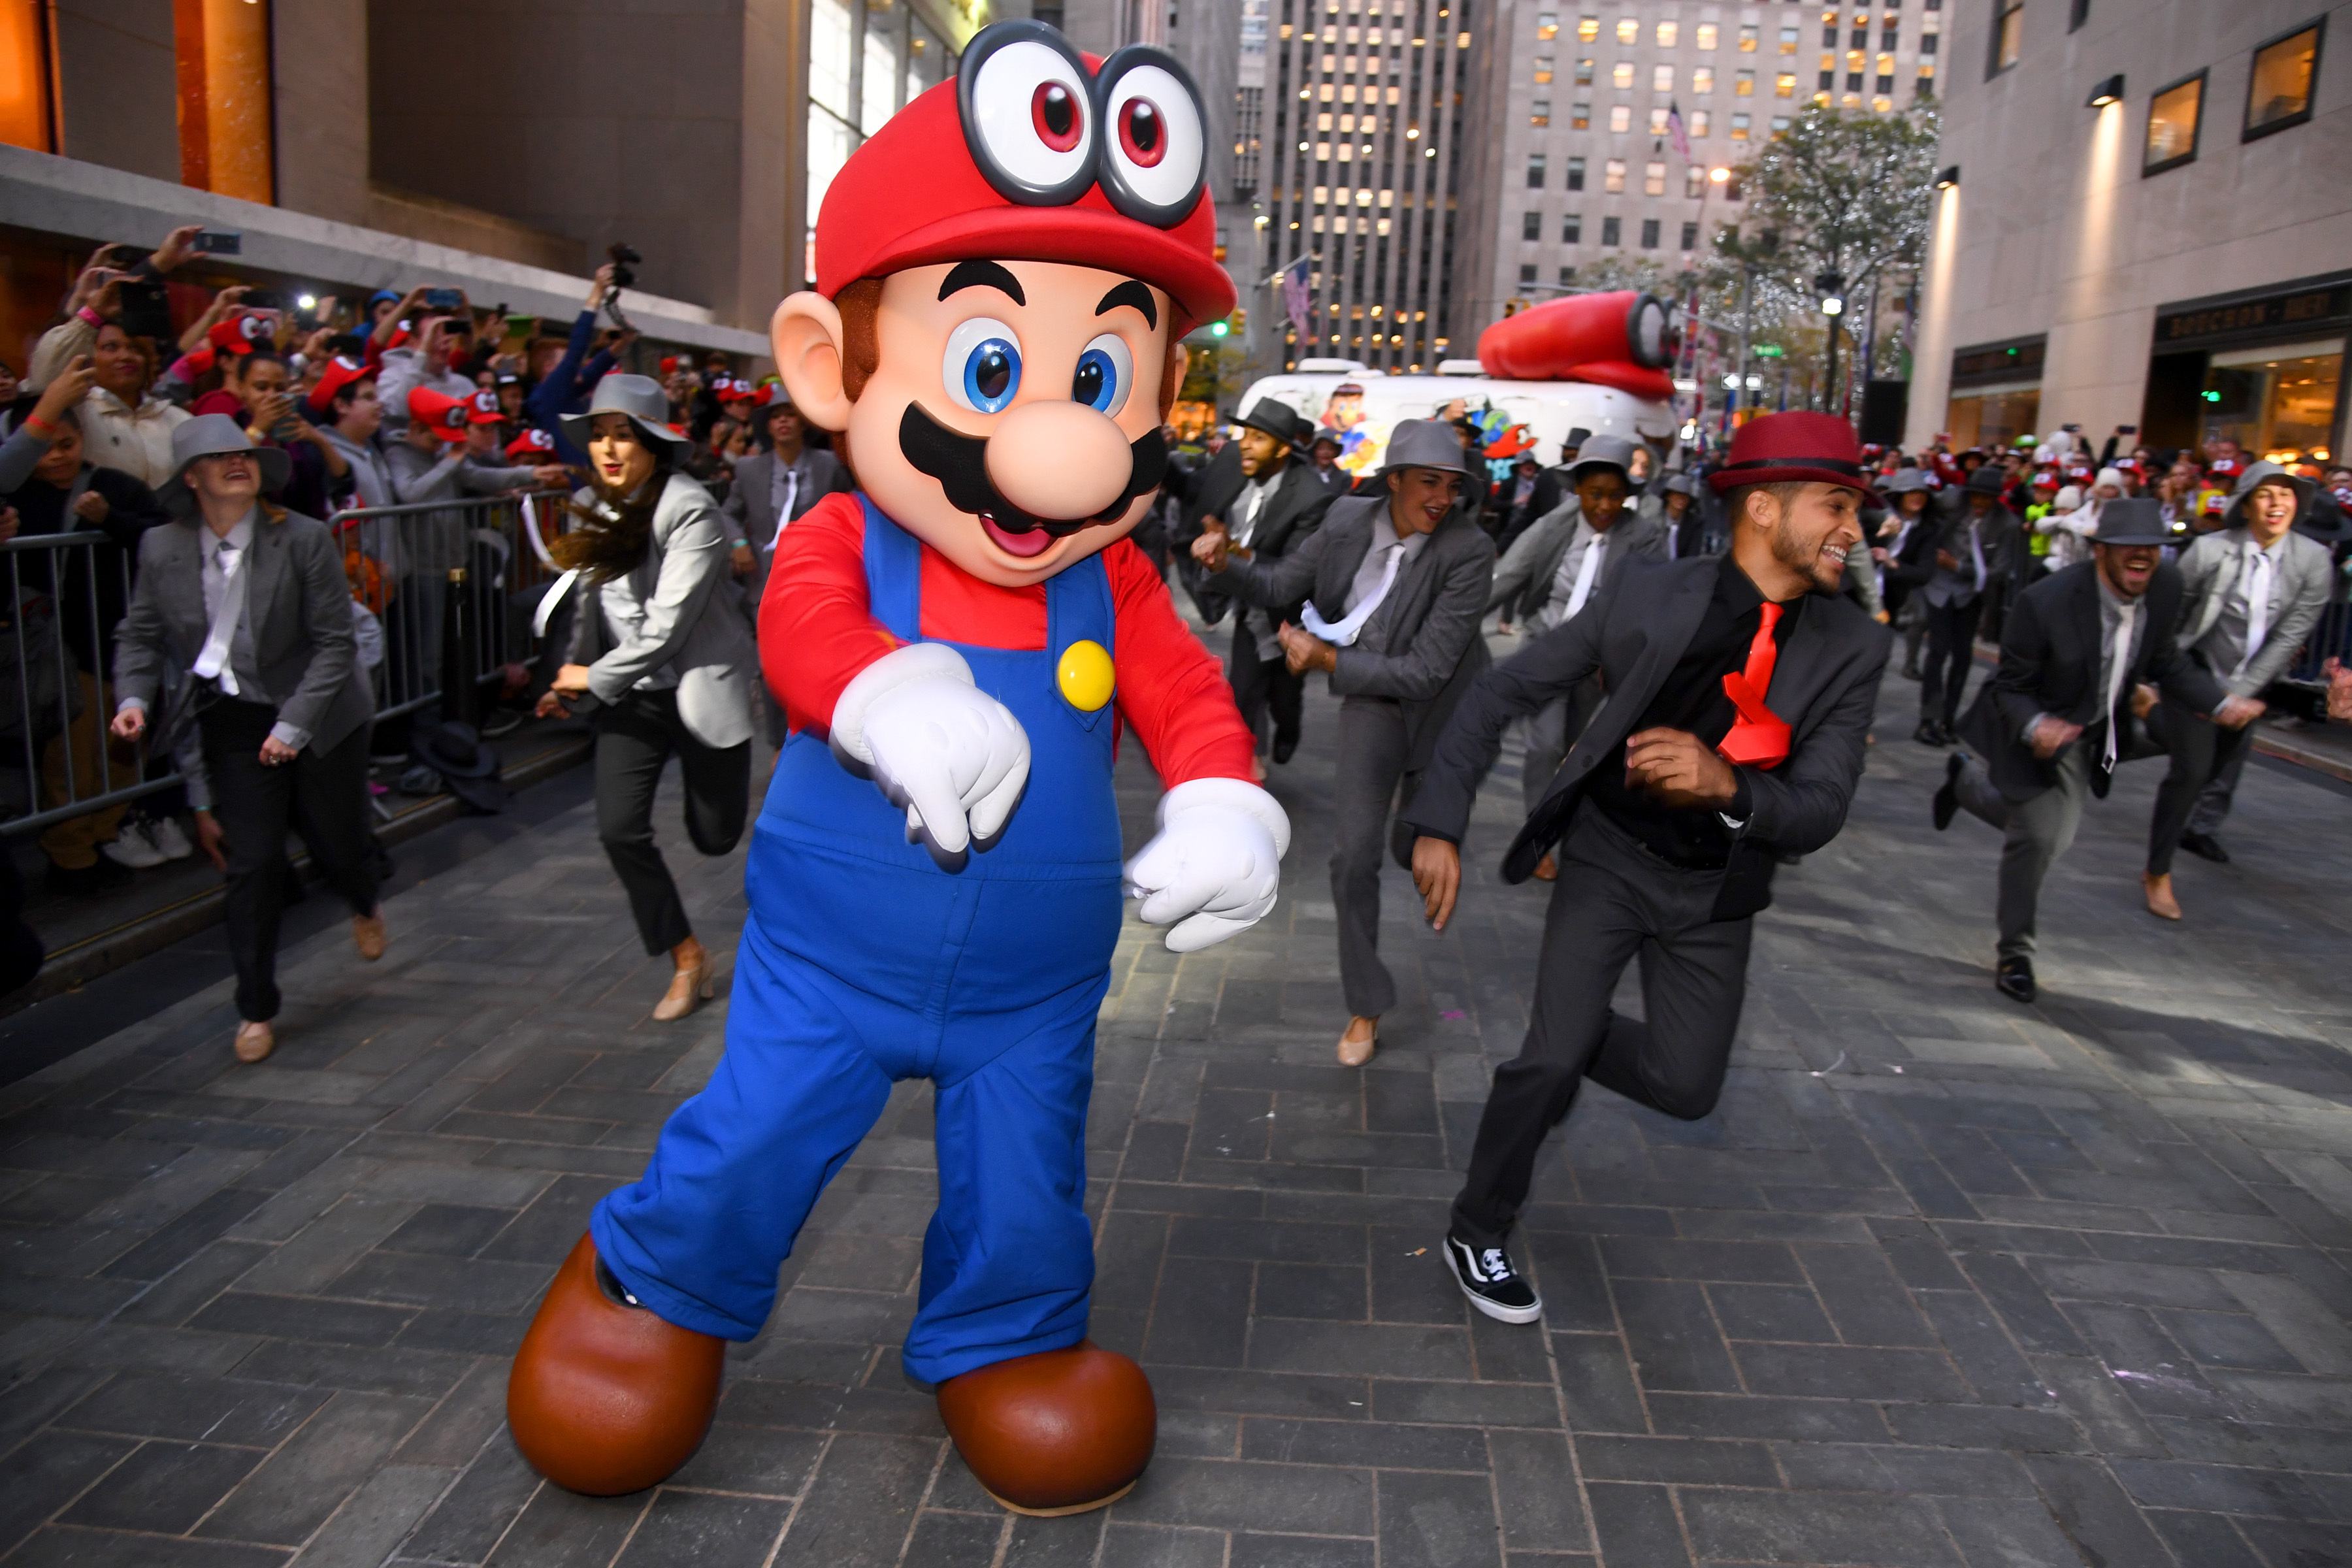 Nintendo Celebrates The Launch Of Super Mario Odyssey In Style